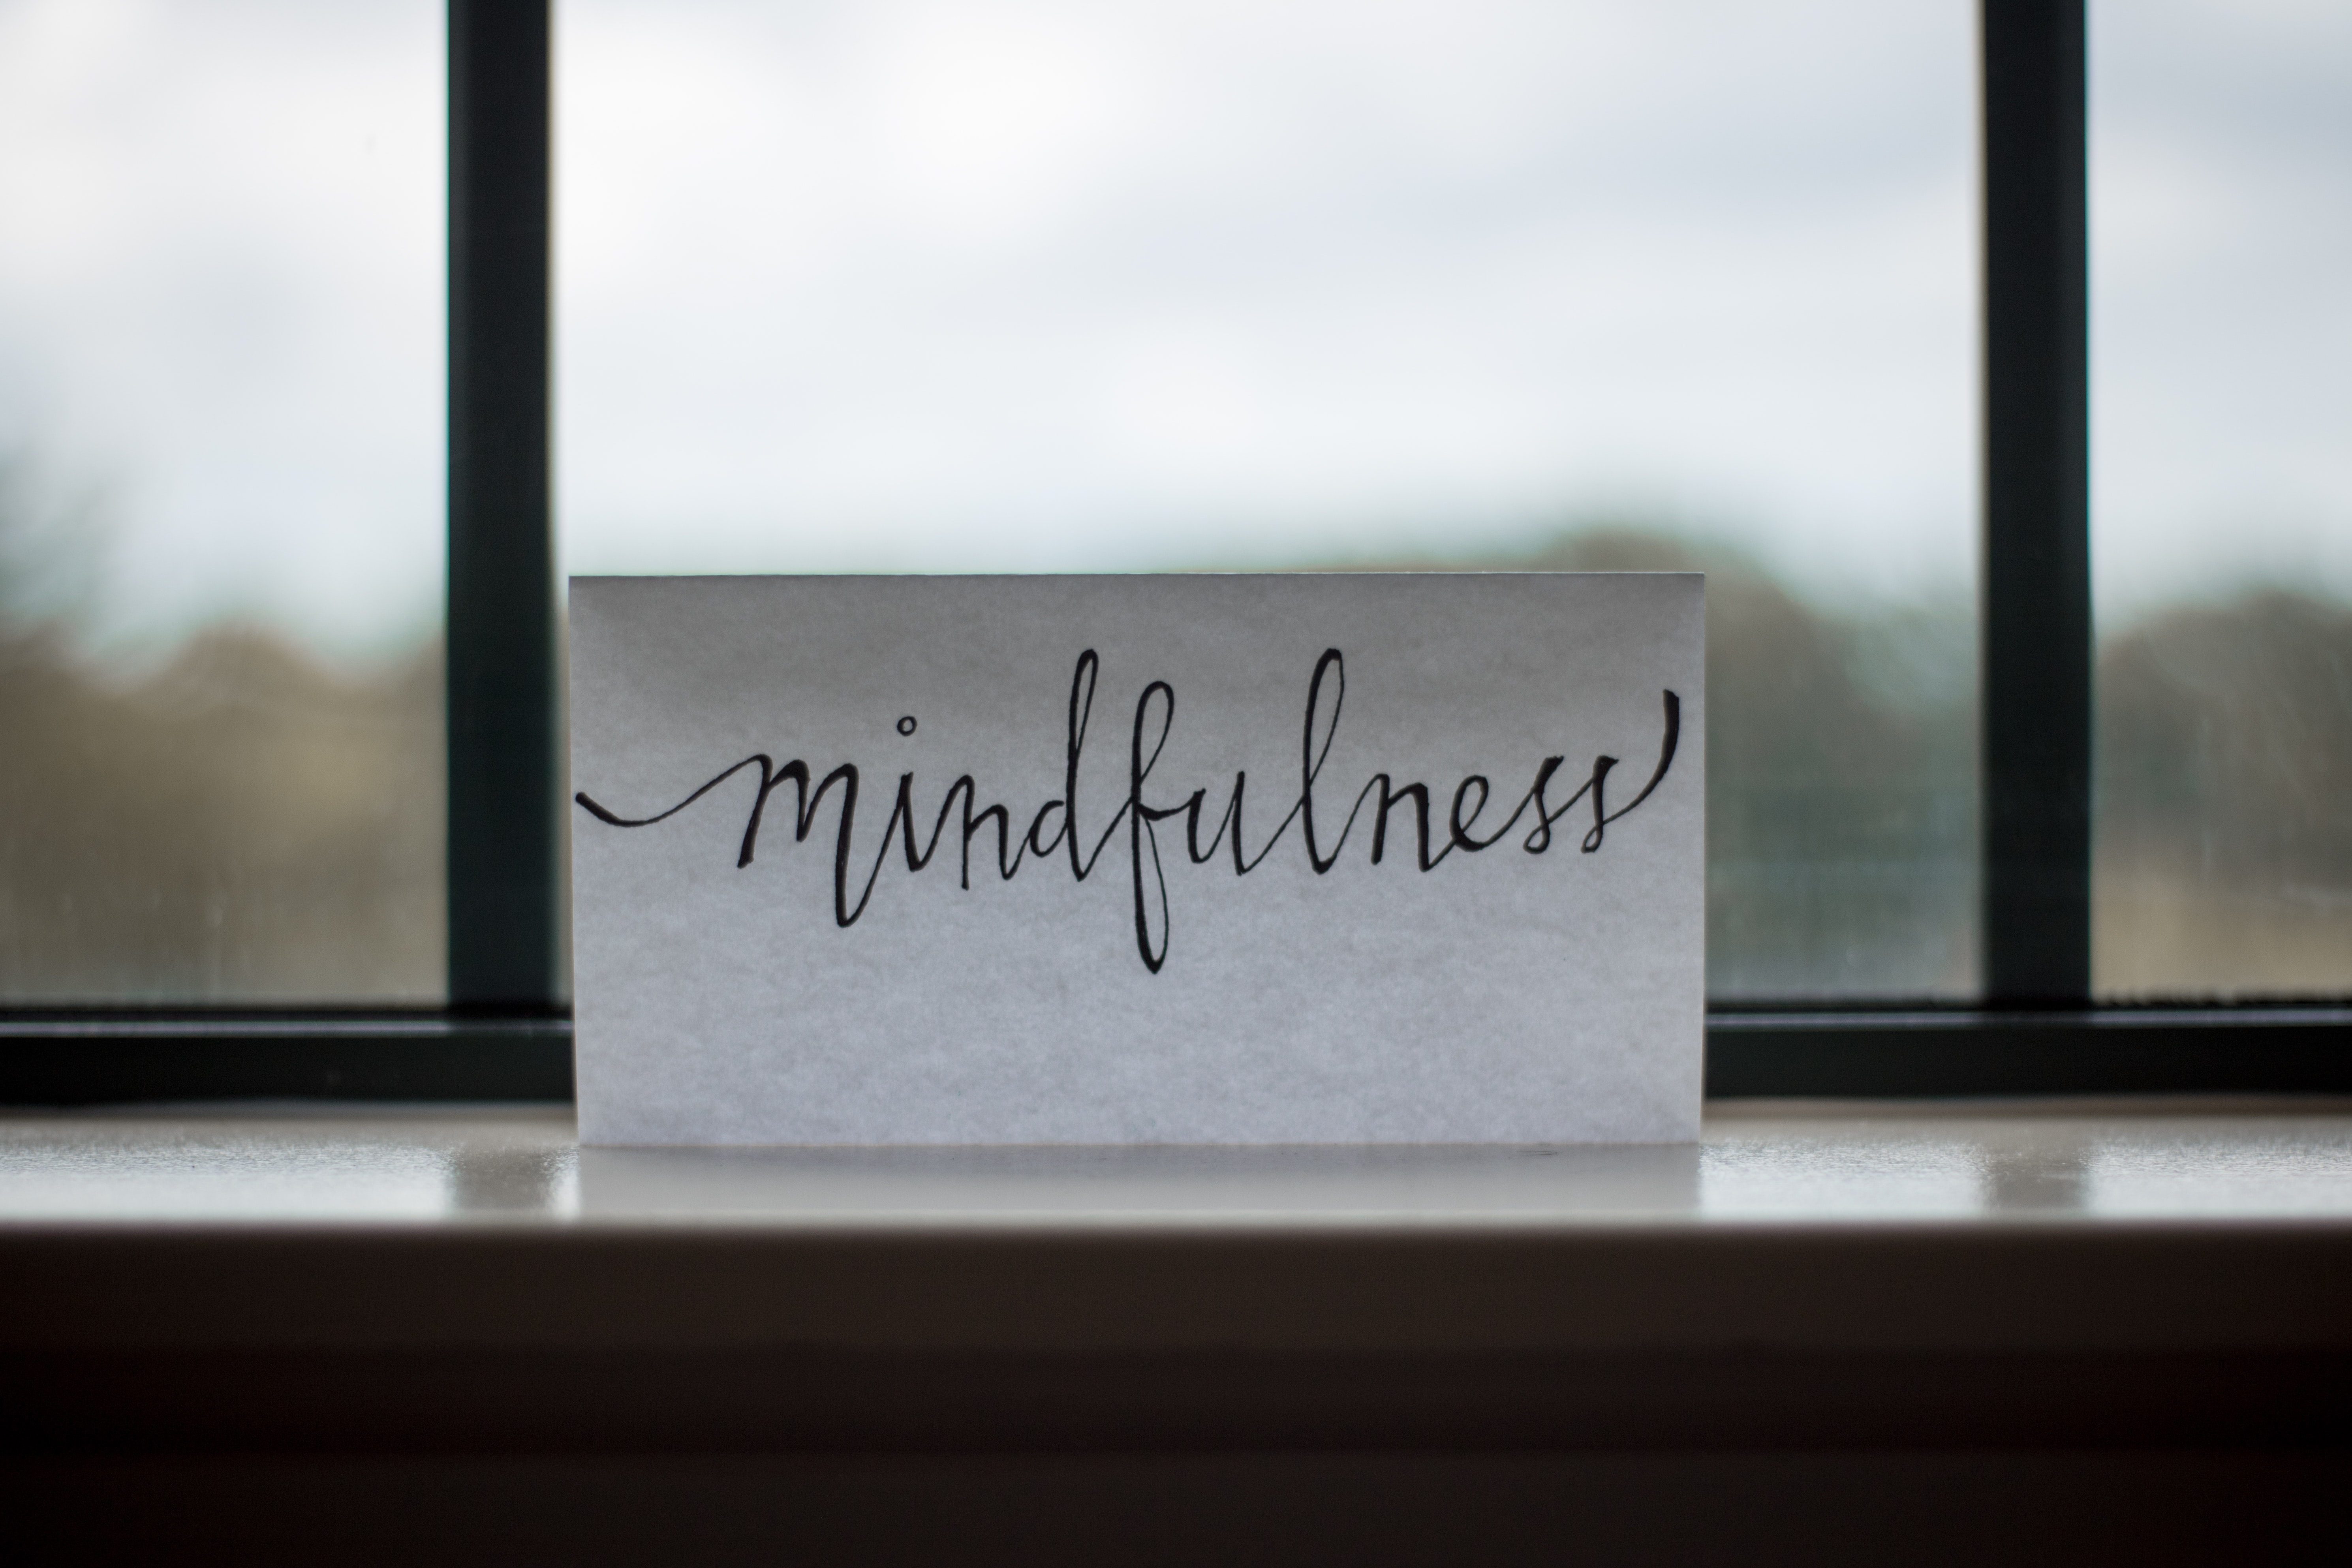 Mindfulness: A path to mental health and wellbeing